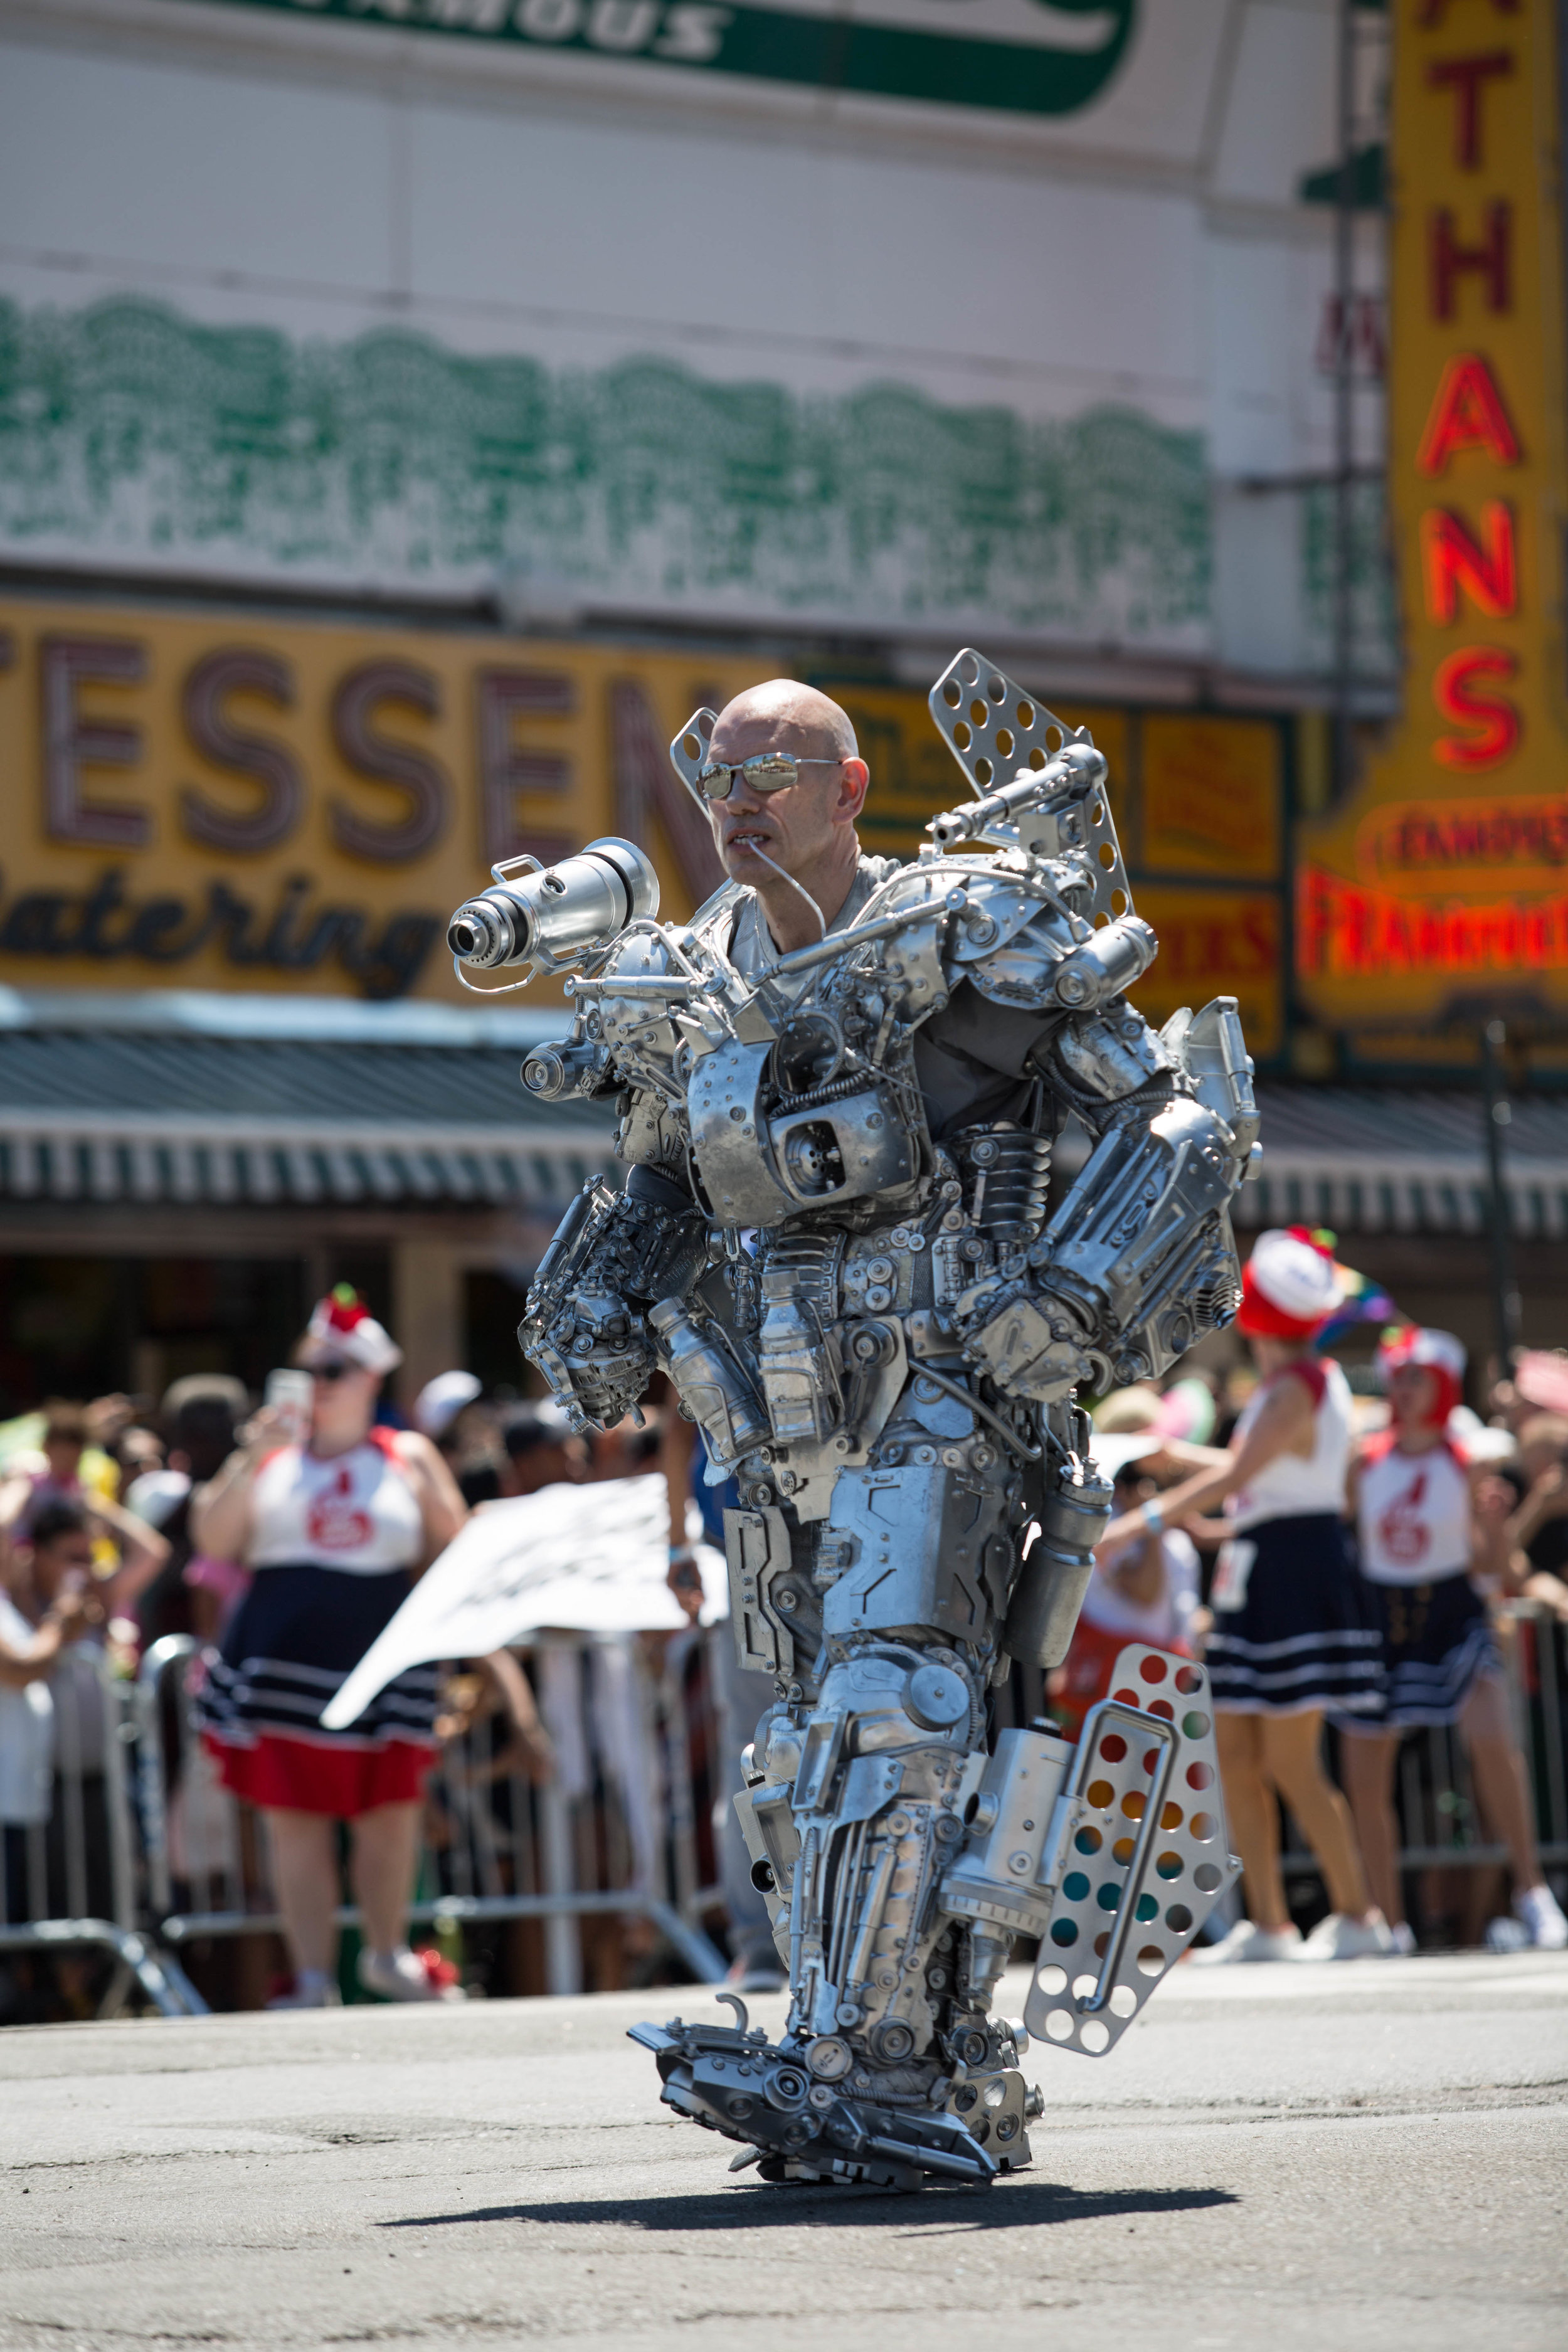 A killer robot joins Coney Island's 36th anual Mermaid Day Parade, on Saturday June 16, in New York. Photo: Wes Parnell